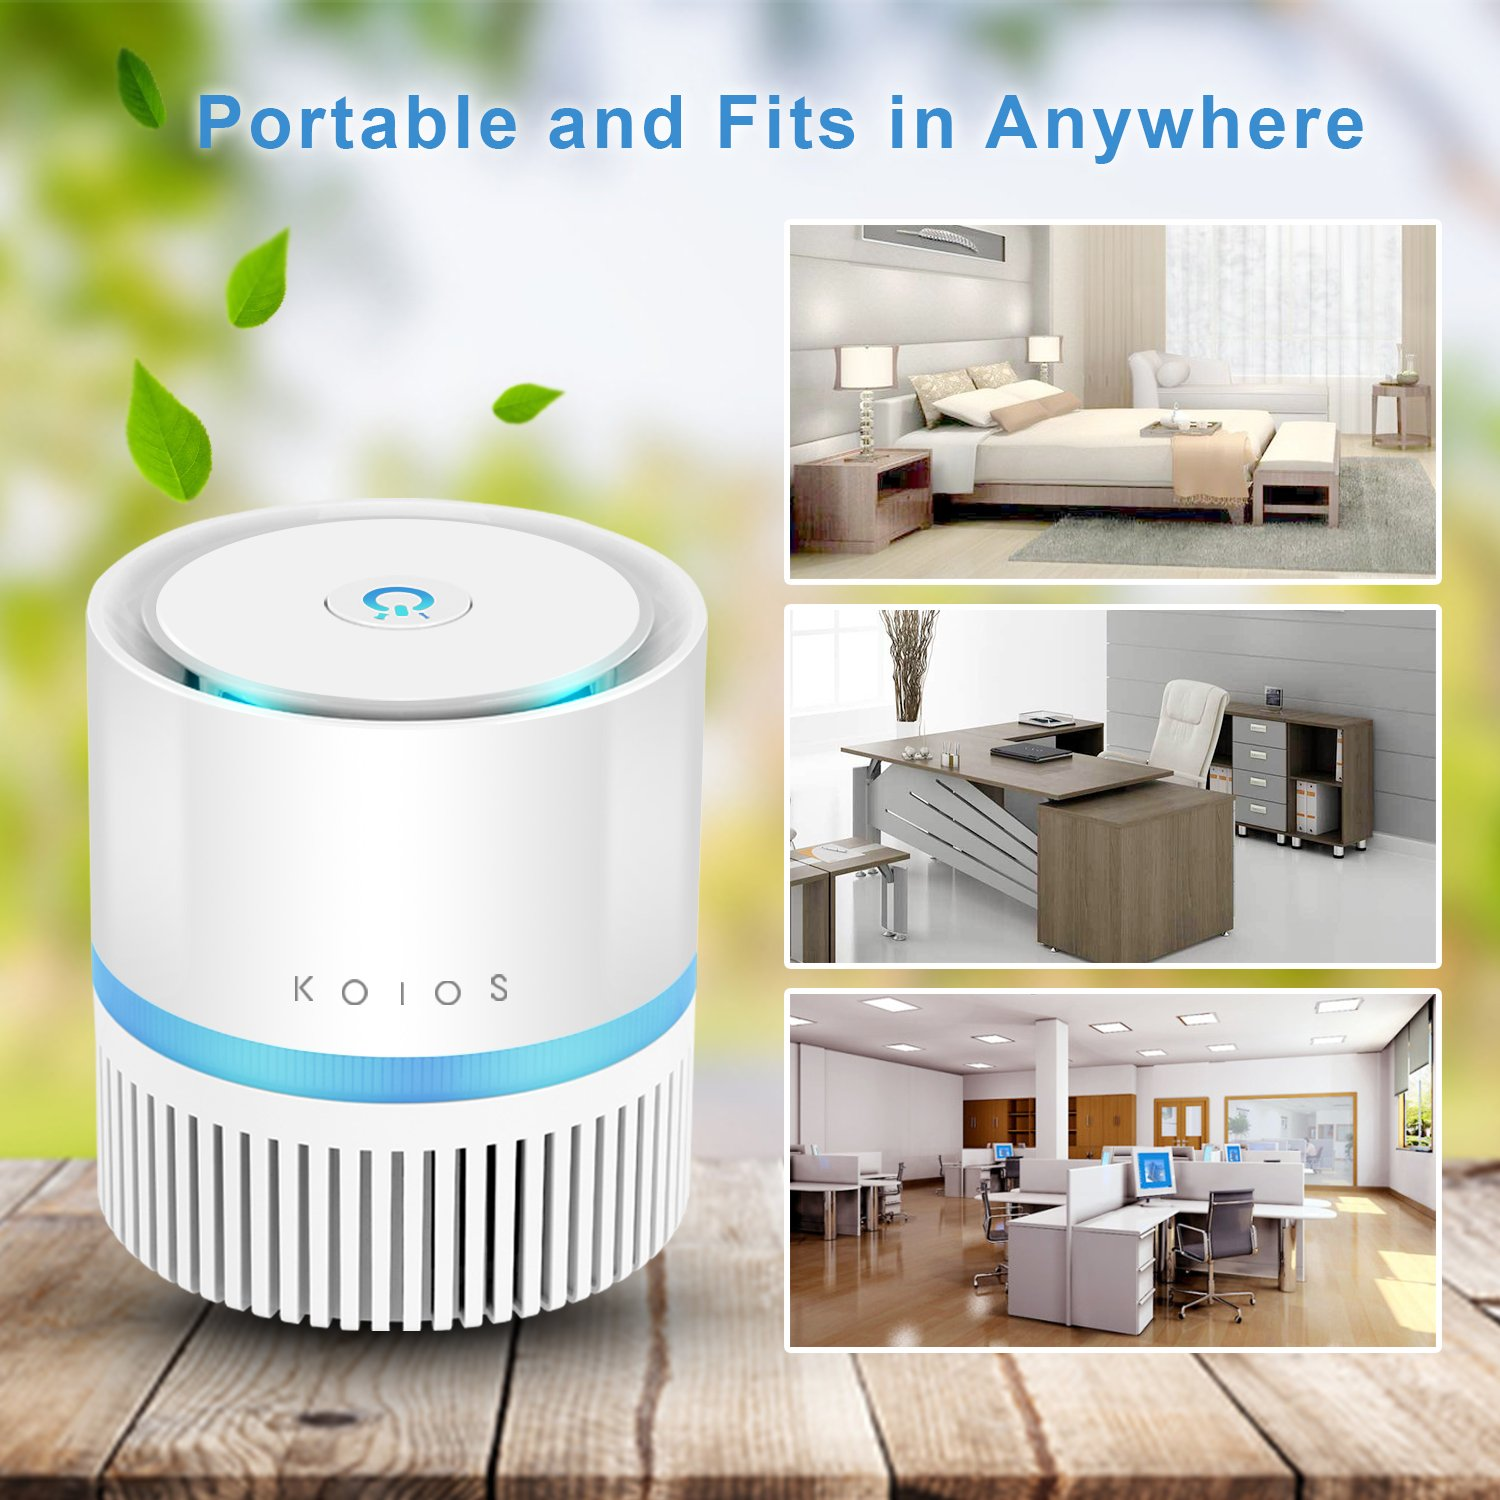 Best air filter for allergies and pet dander - Koios Desktop Air Purifier With True Hepa Filter Compact Air Cleaner For Rooms And Offices Reduces Allergens Pollen Dust Mold Pet Dander